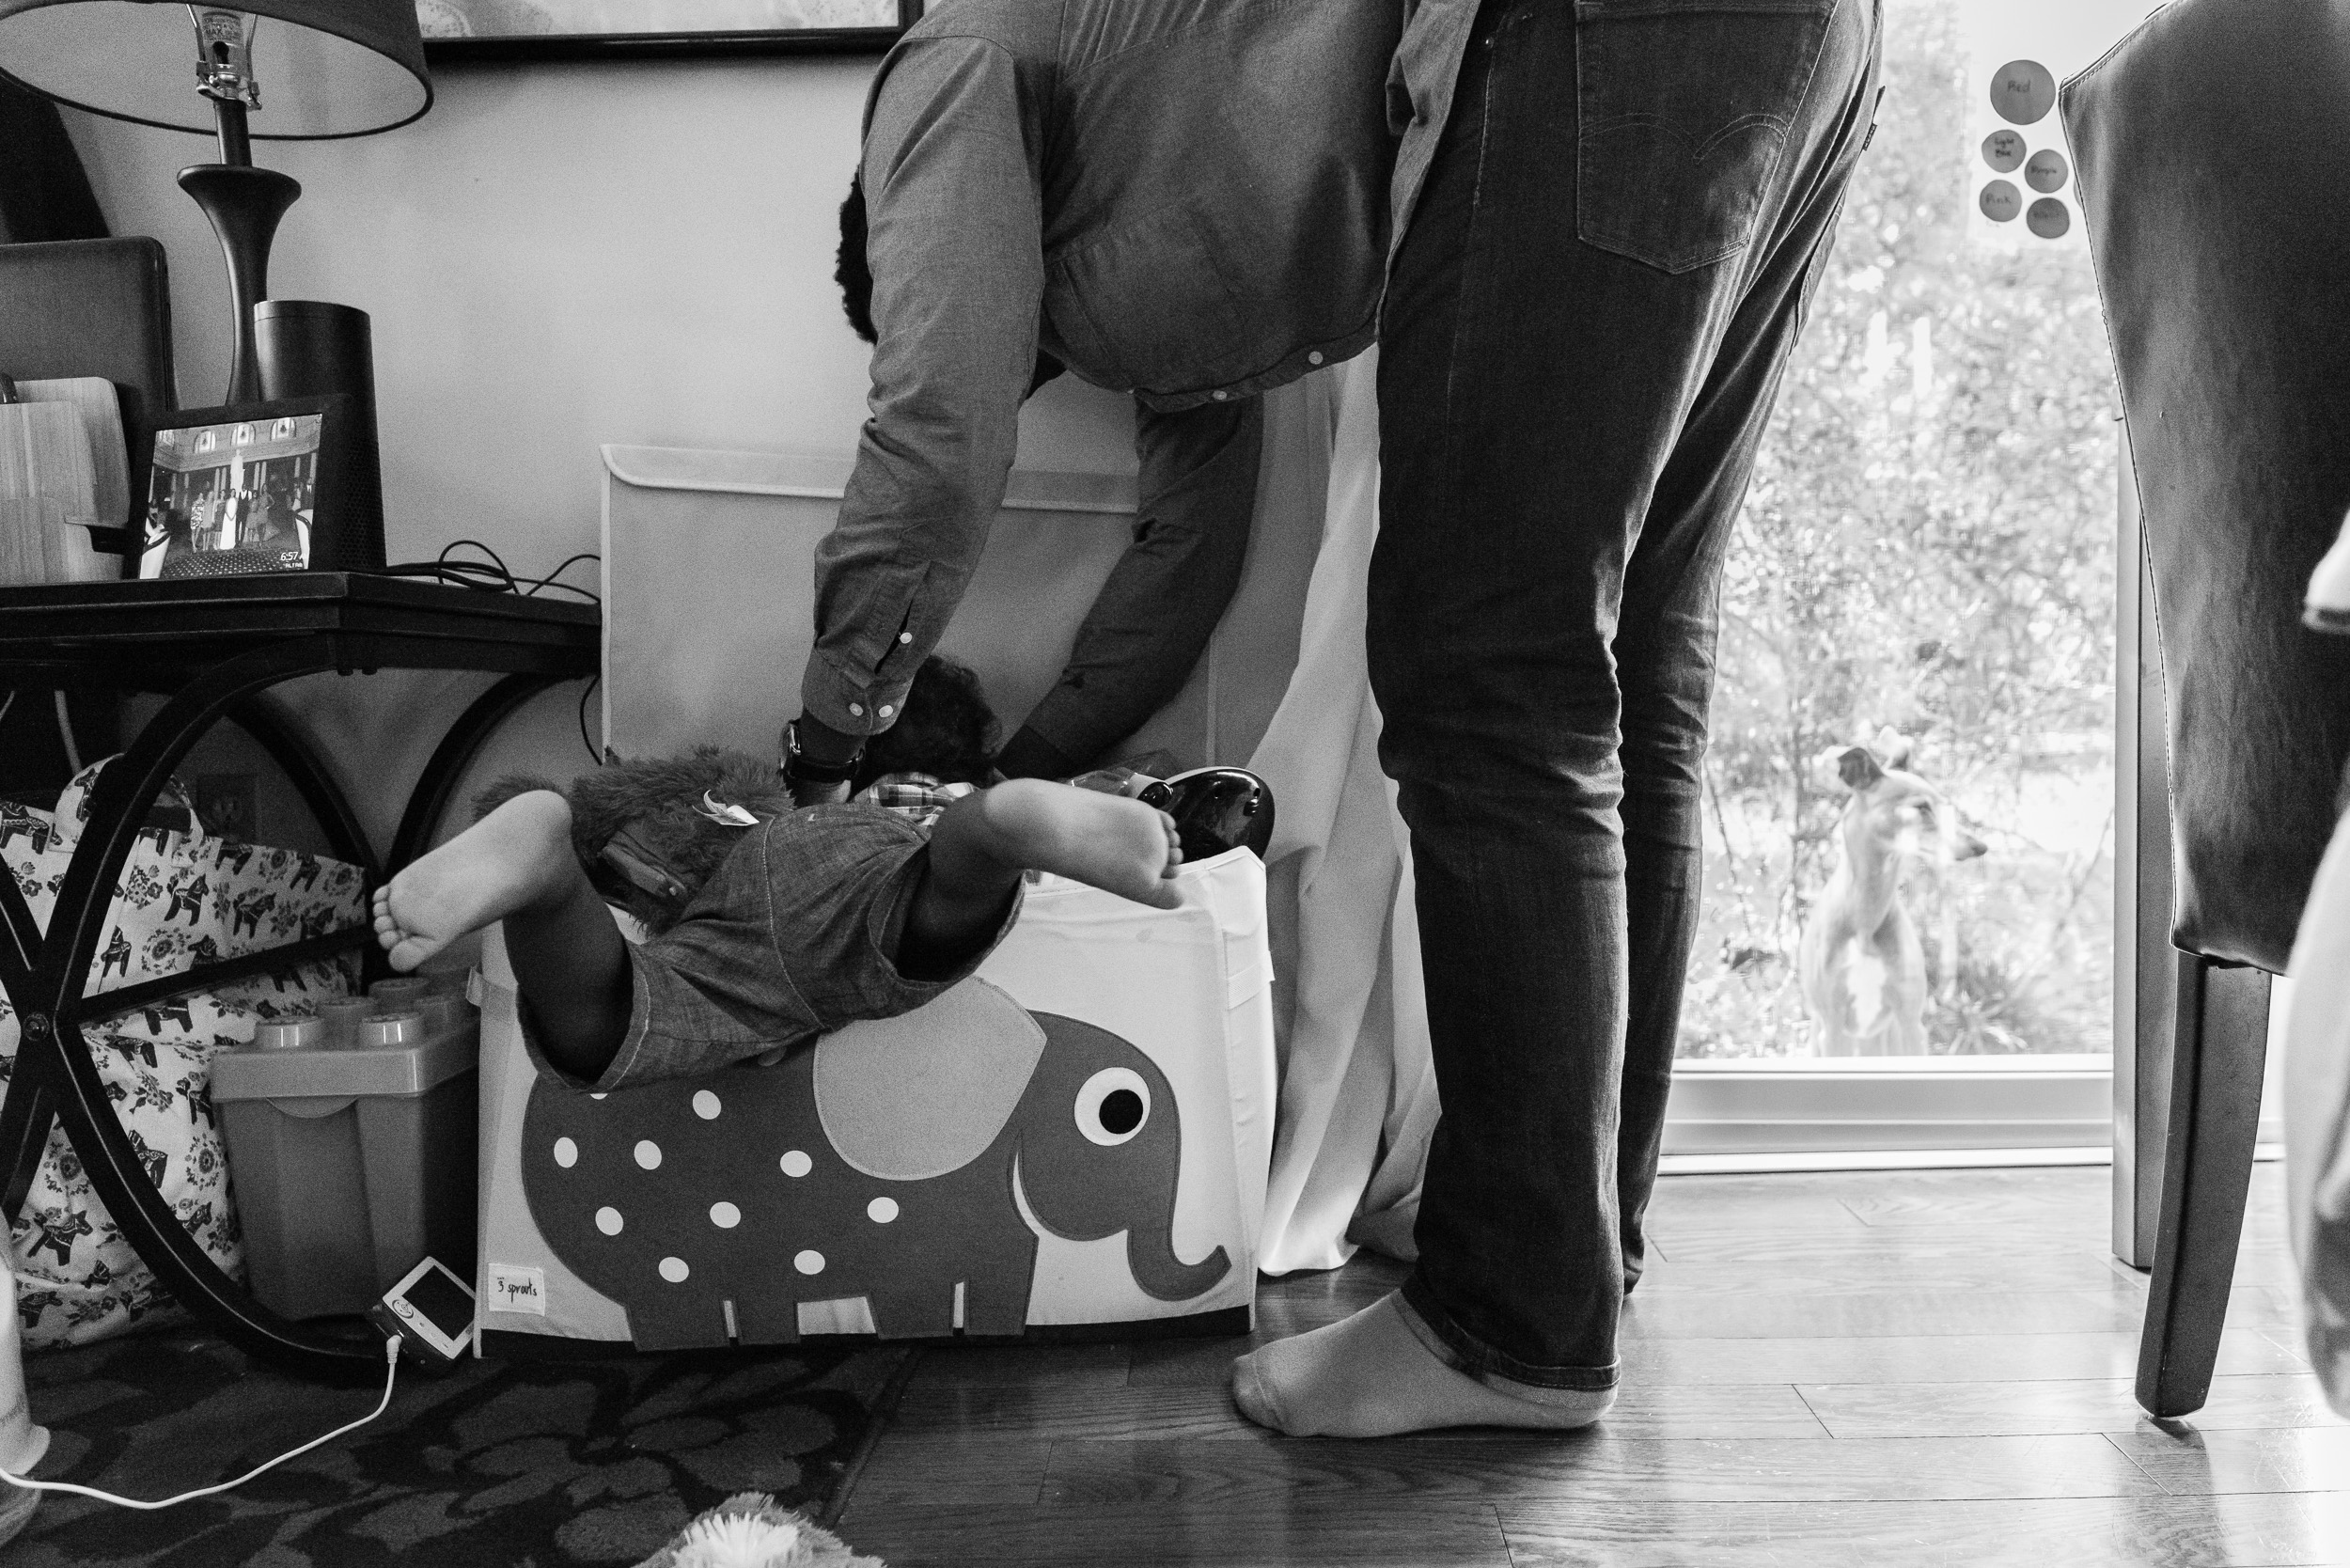 Dad helping son look for toys in bin by Northern Virginia Family Photographer Nicole Sanchez